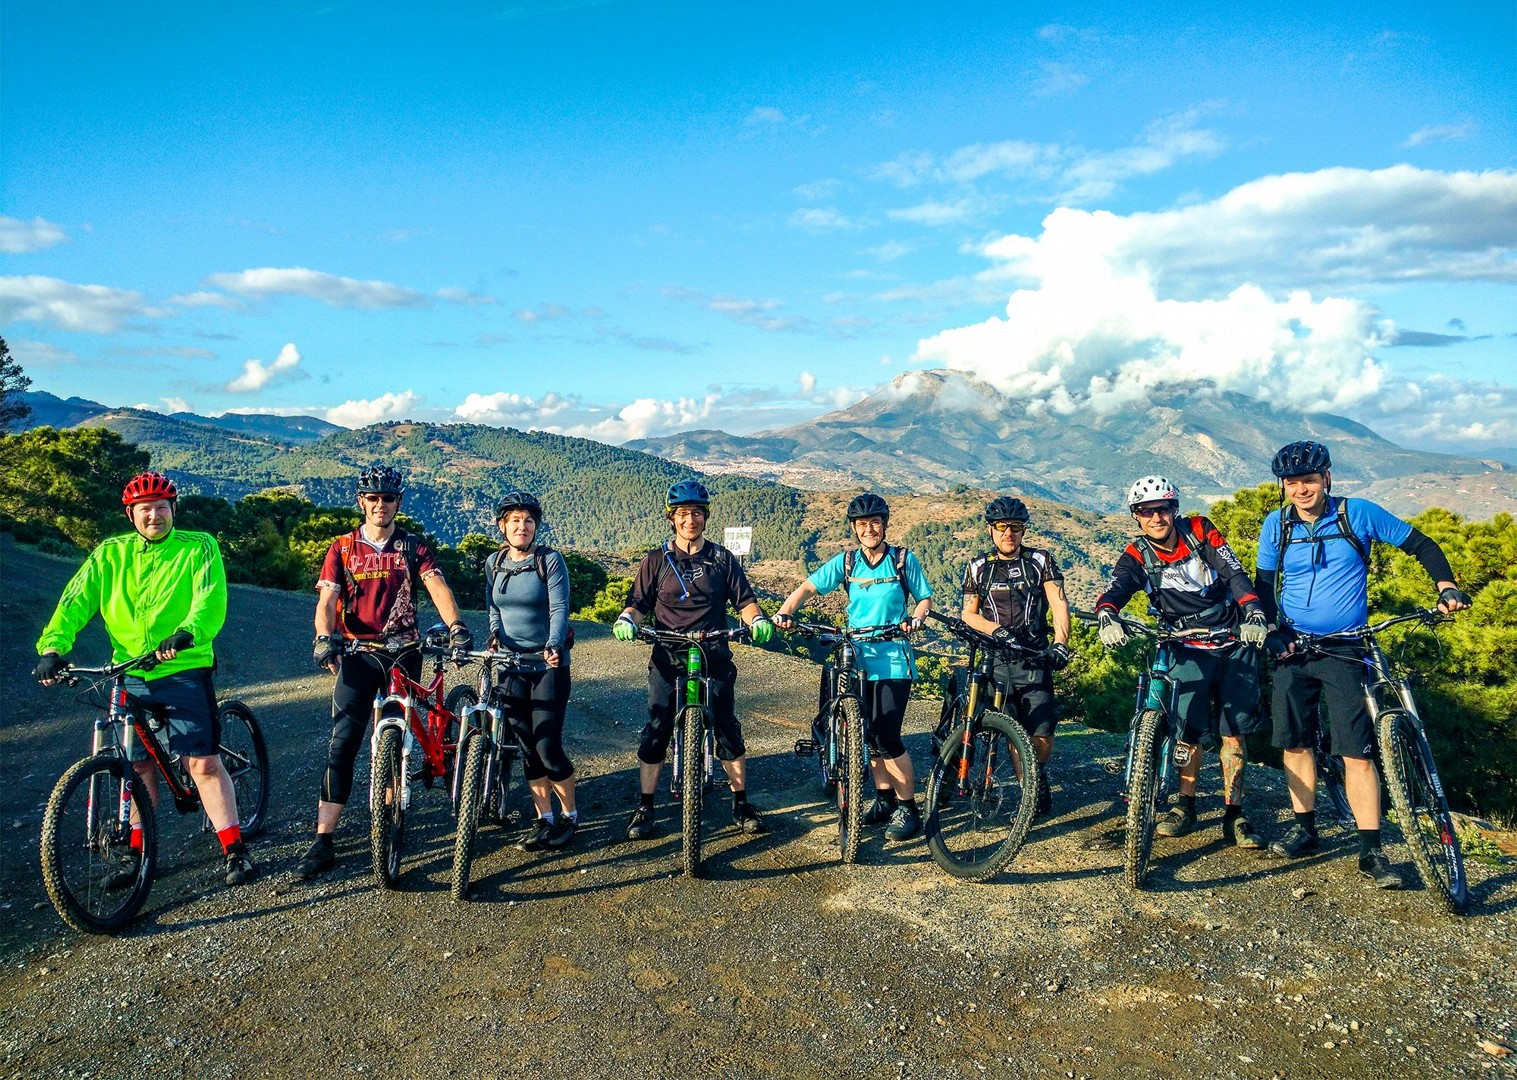 guided-mountain-bike-holiday-trans-andaluz-saddle-skedaddle-spain.jpg - Spain - Trans Andaluz - Guided Mountain Bike Holiday - Mountain Biking